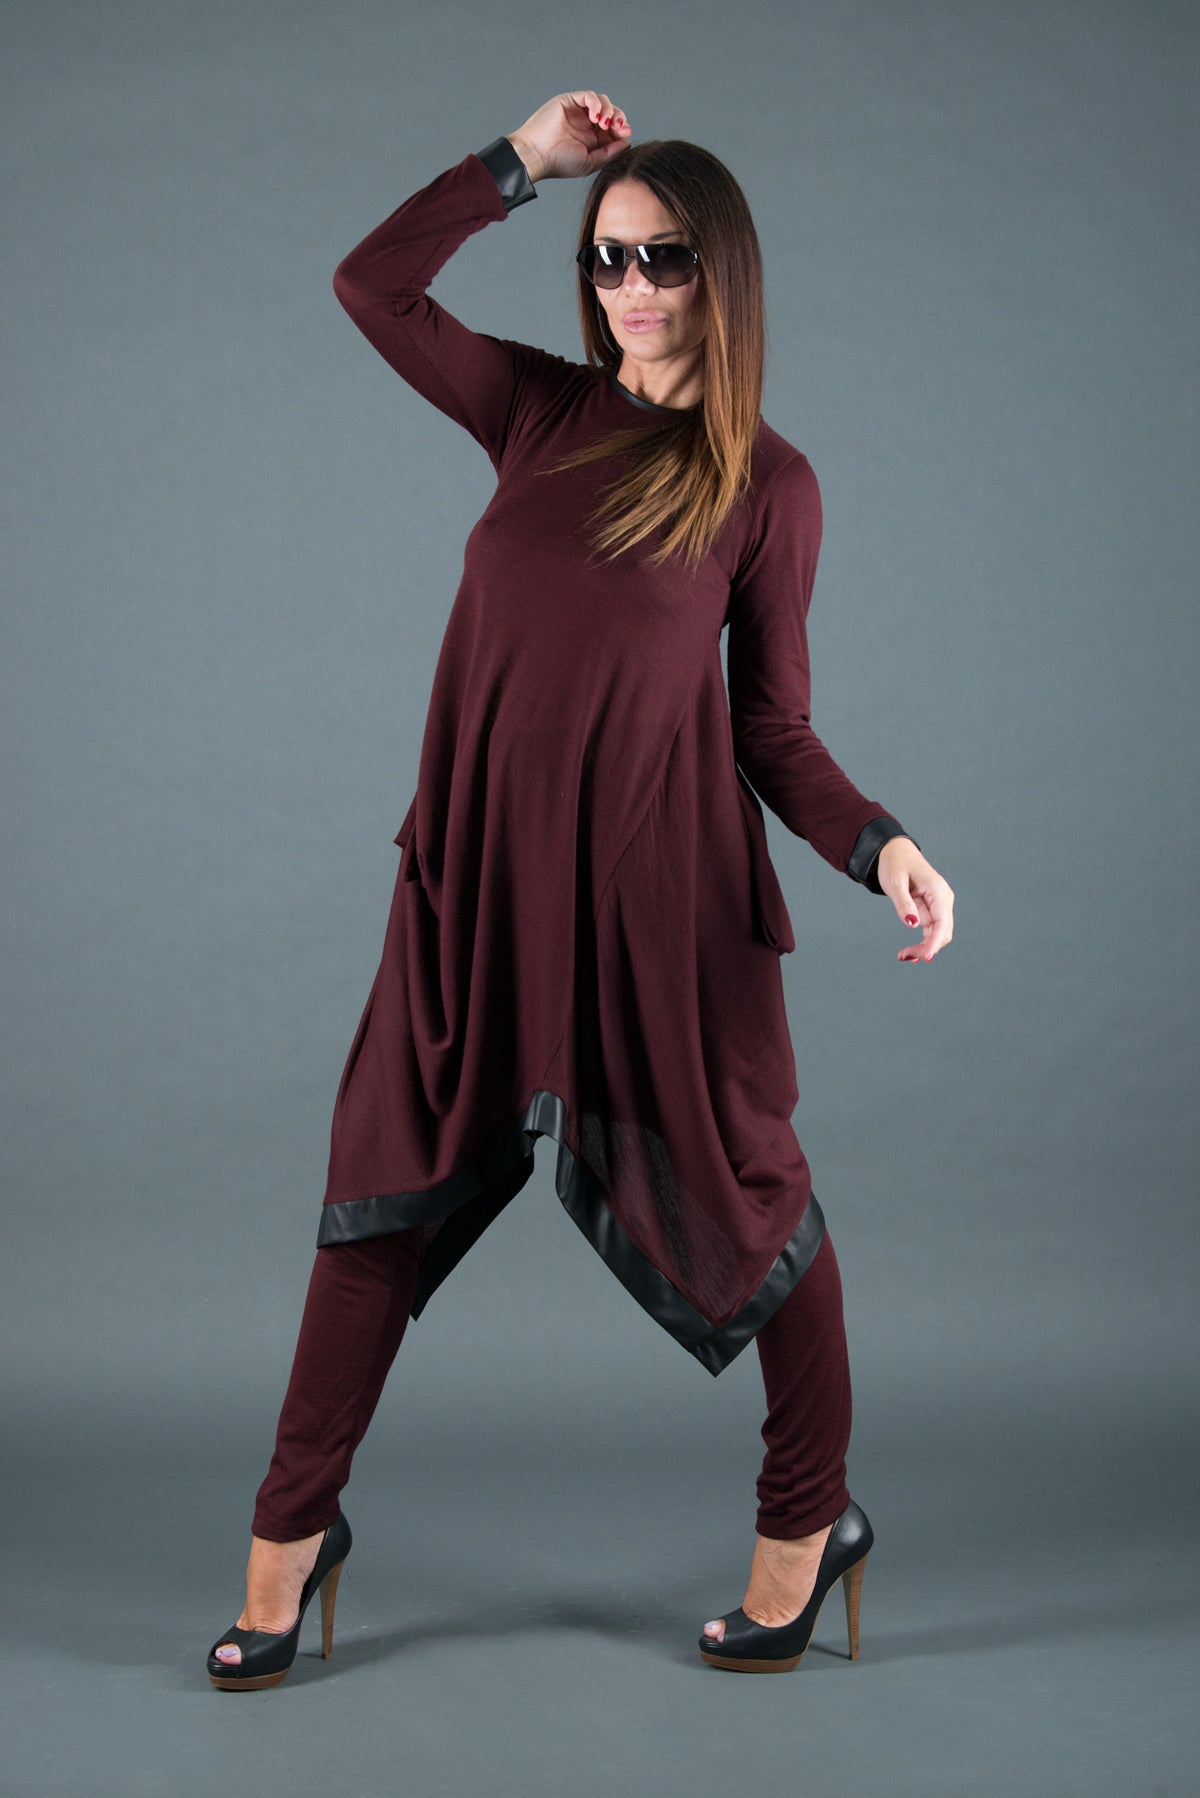 Dark Red Two pieces set, Knitting Tunic with leggings, Elegant & Sport Sets